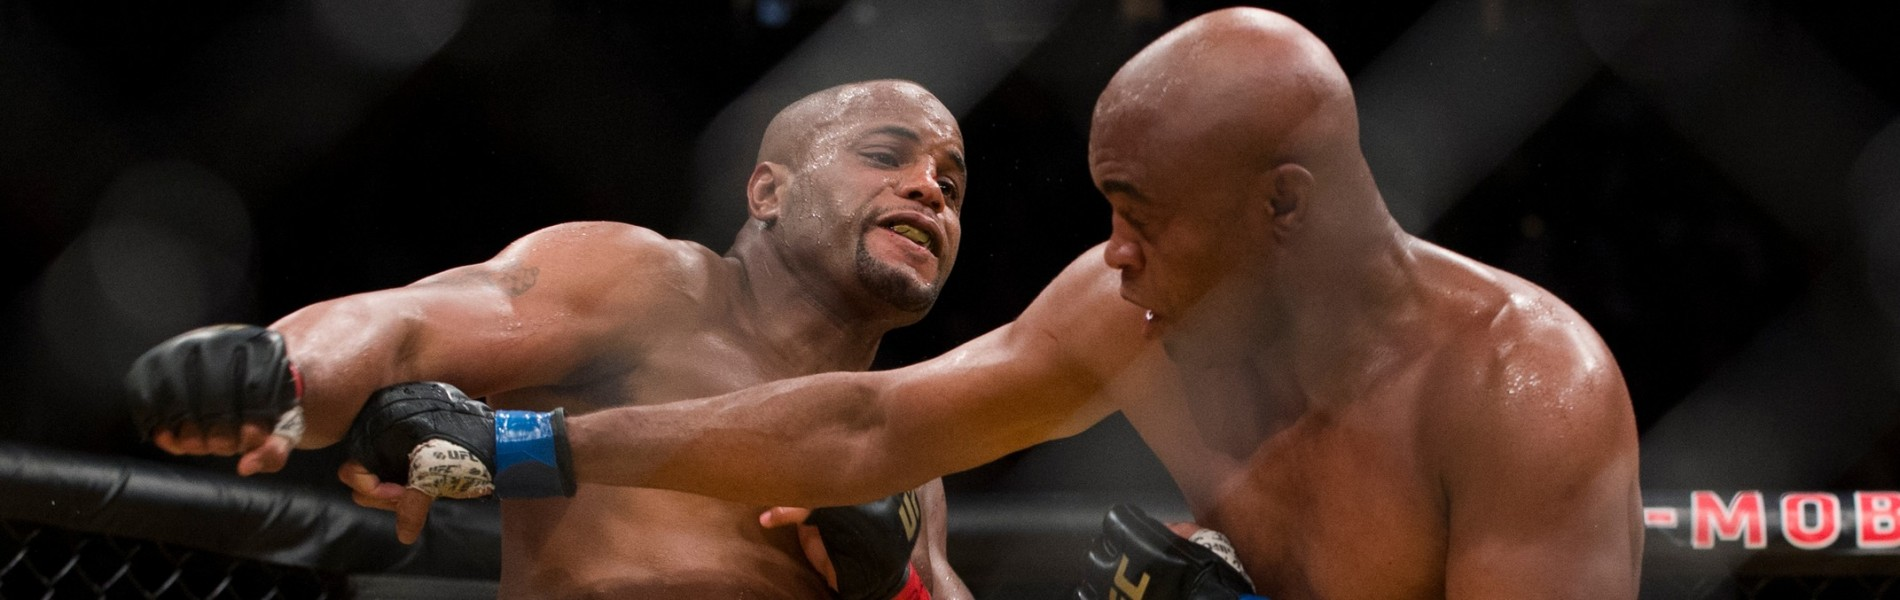 Daniel Cormier throws a punch against Anderson Silva during UFC 200 at T-Mobile Arena on July 9, 2016 in Las Vegas, Nevada.